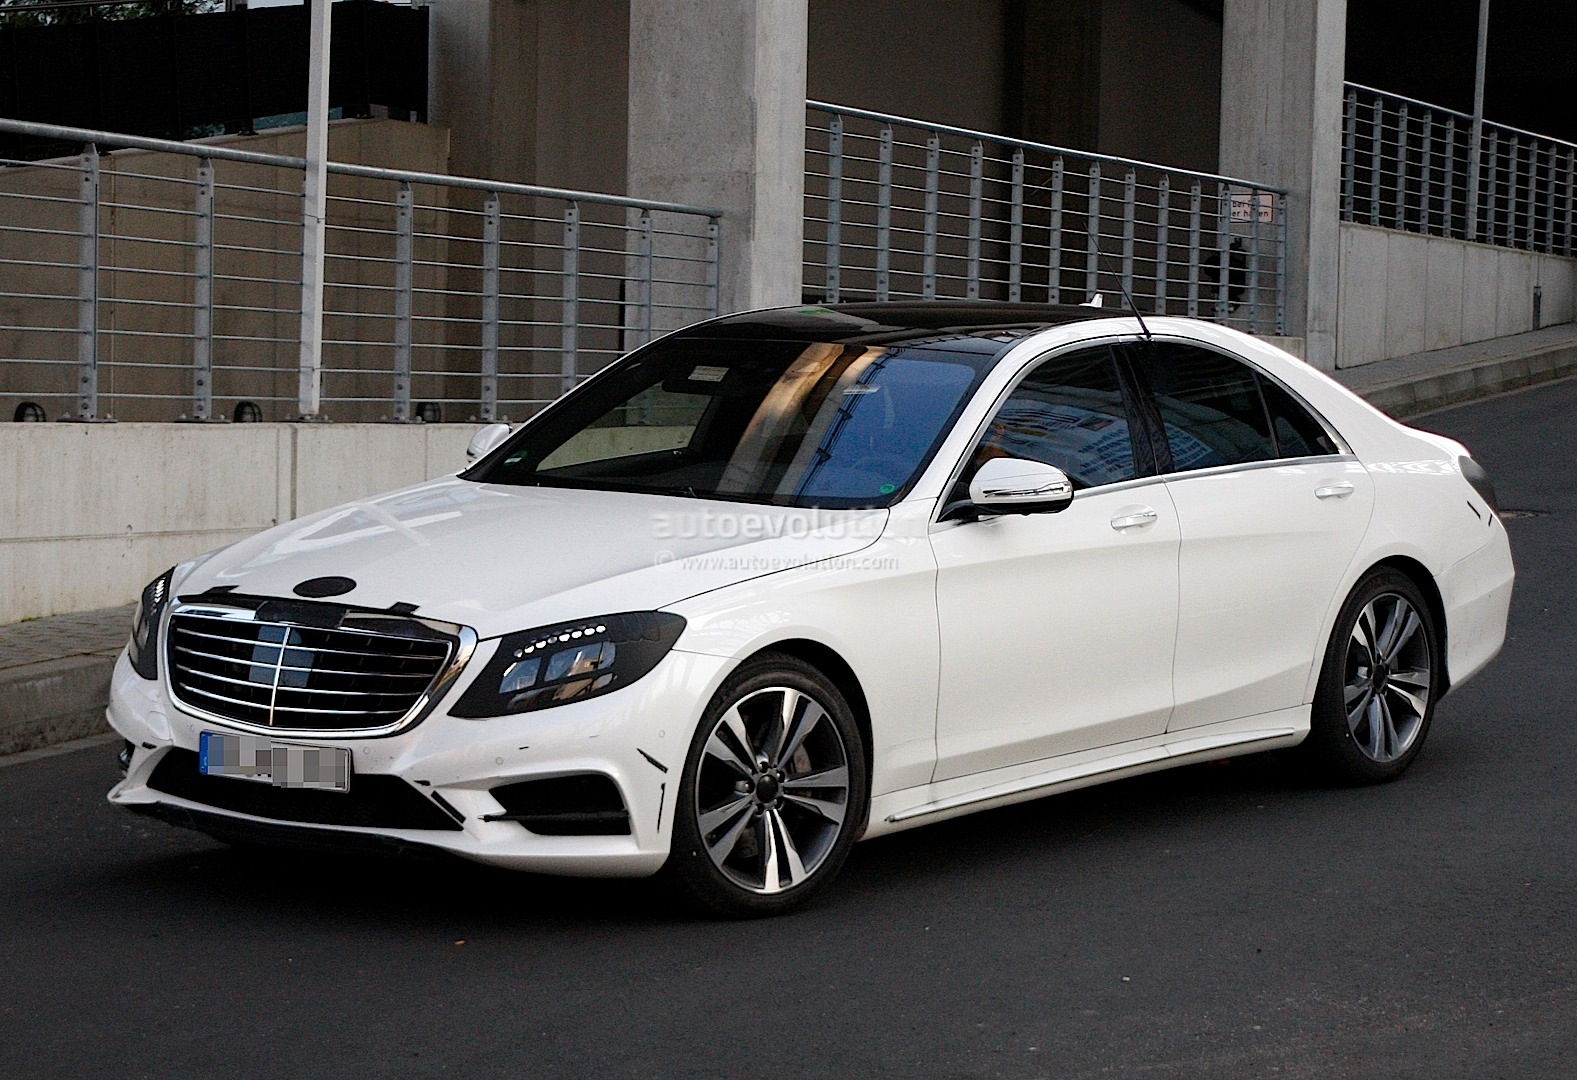 spyshots 2014 w222 mercedes benz s class almost undisguised autoevolution. Black Bedroom Furniture Sets. Home Design Ideas